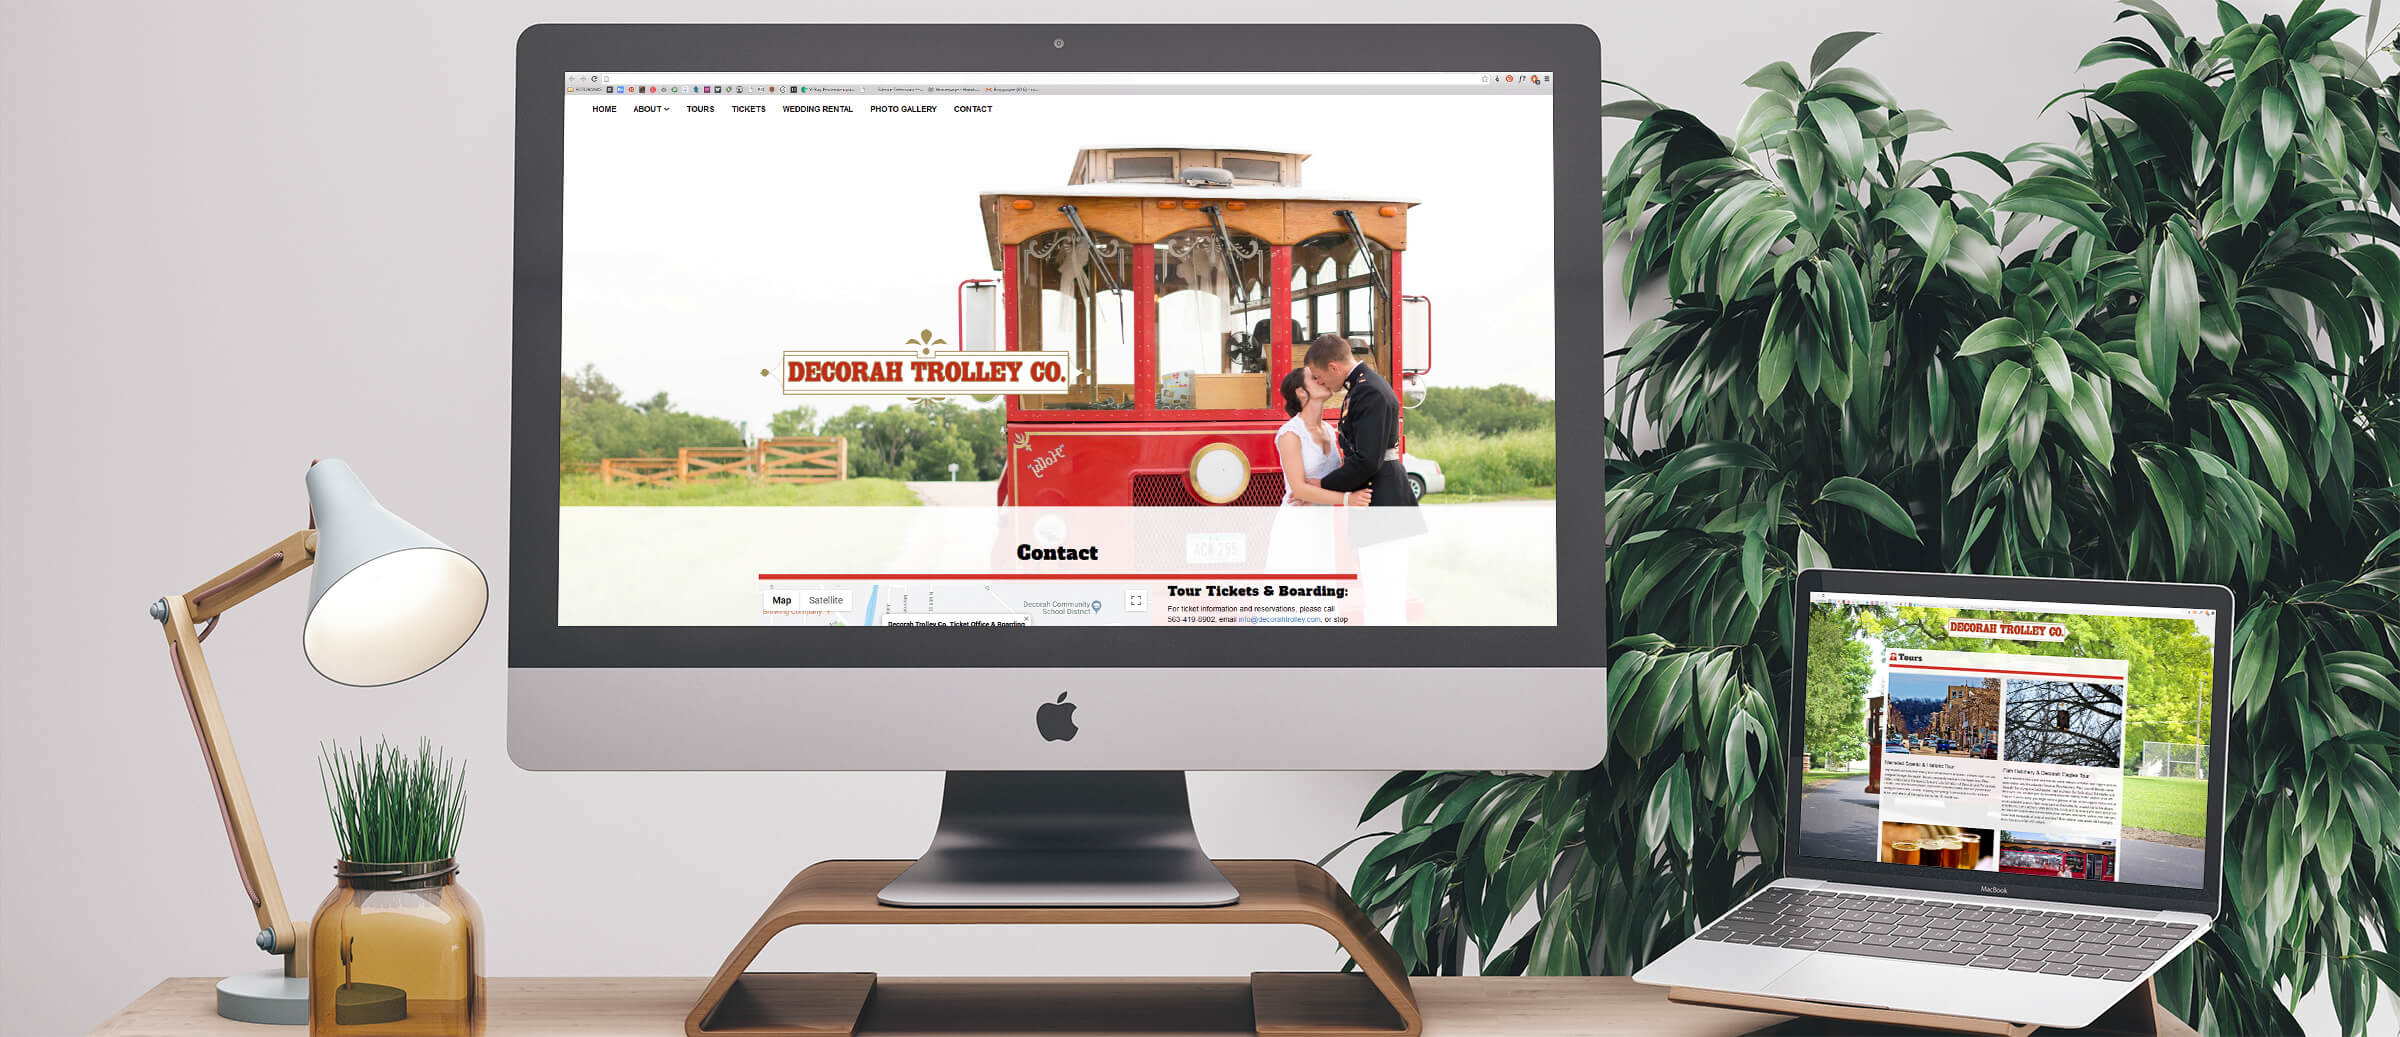 Decorah Trolley's website on computer and laptop